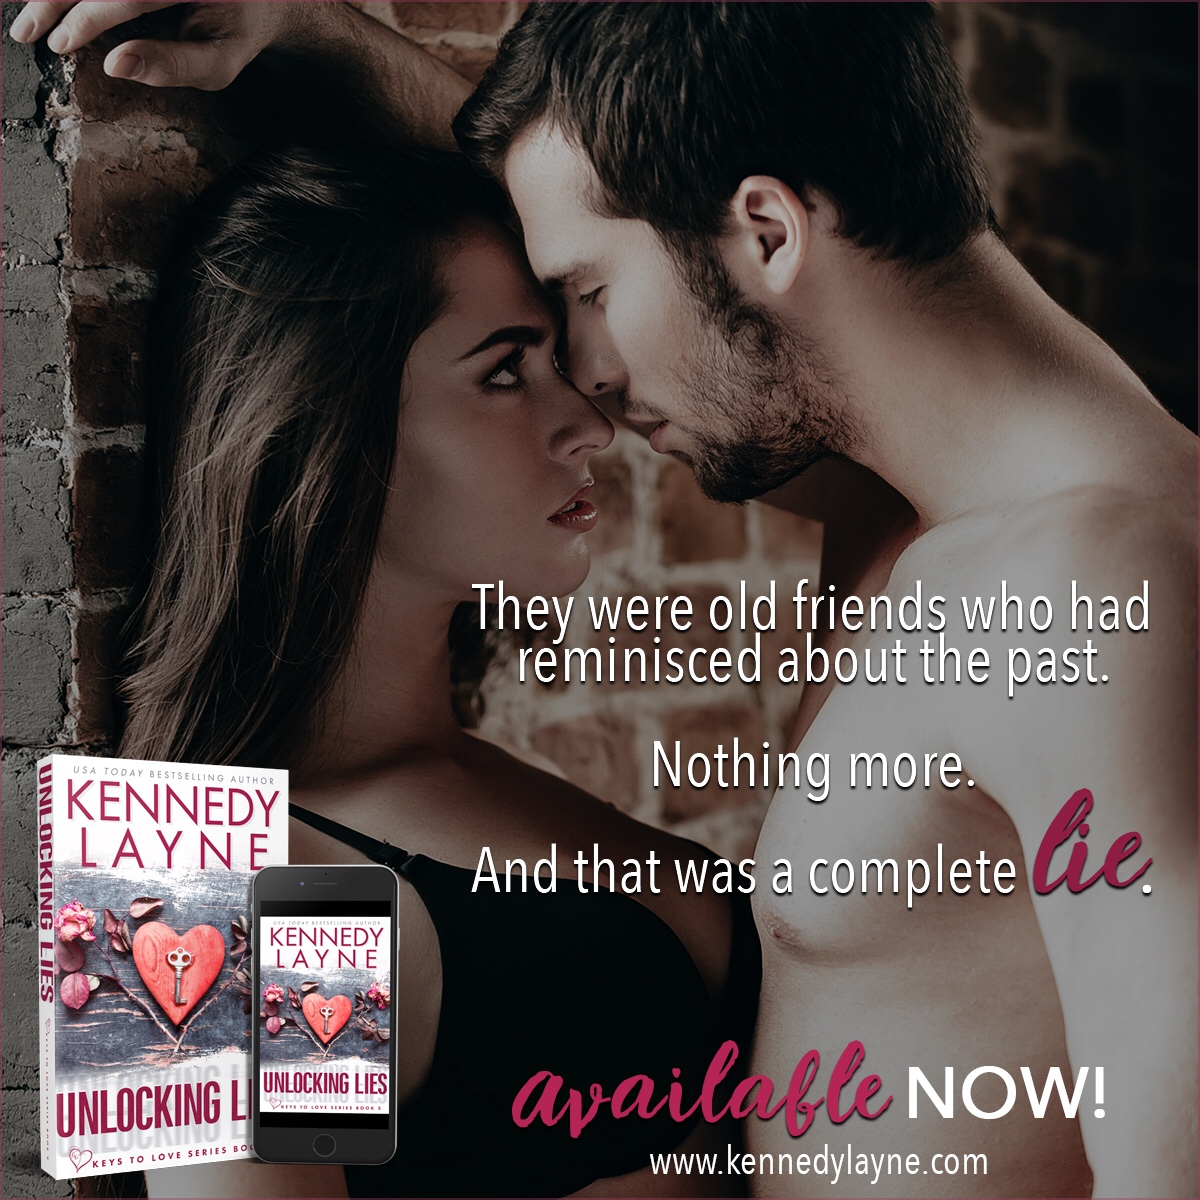 UNLOCKING LIES by Kennedy Layne